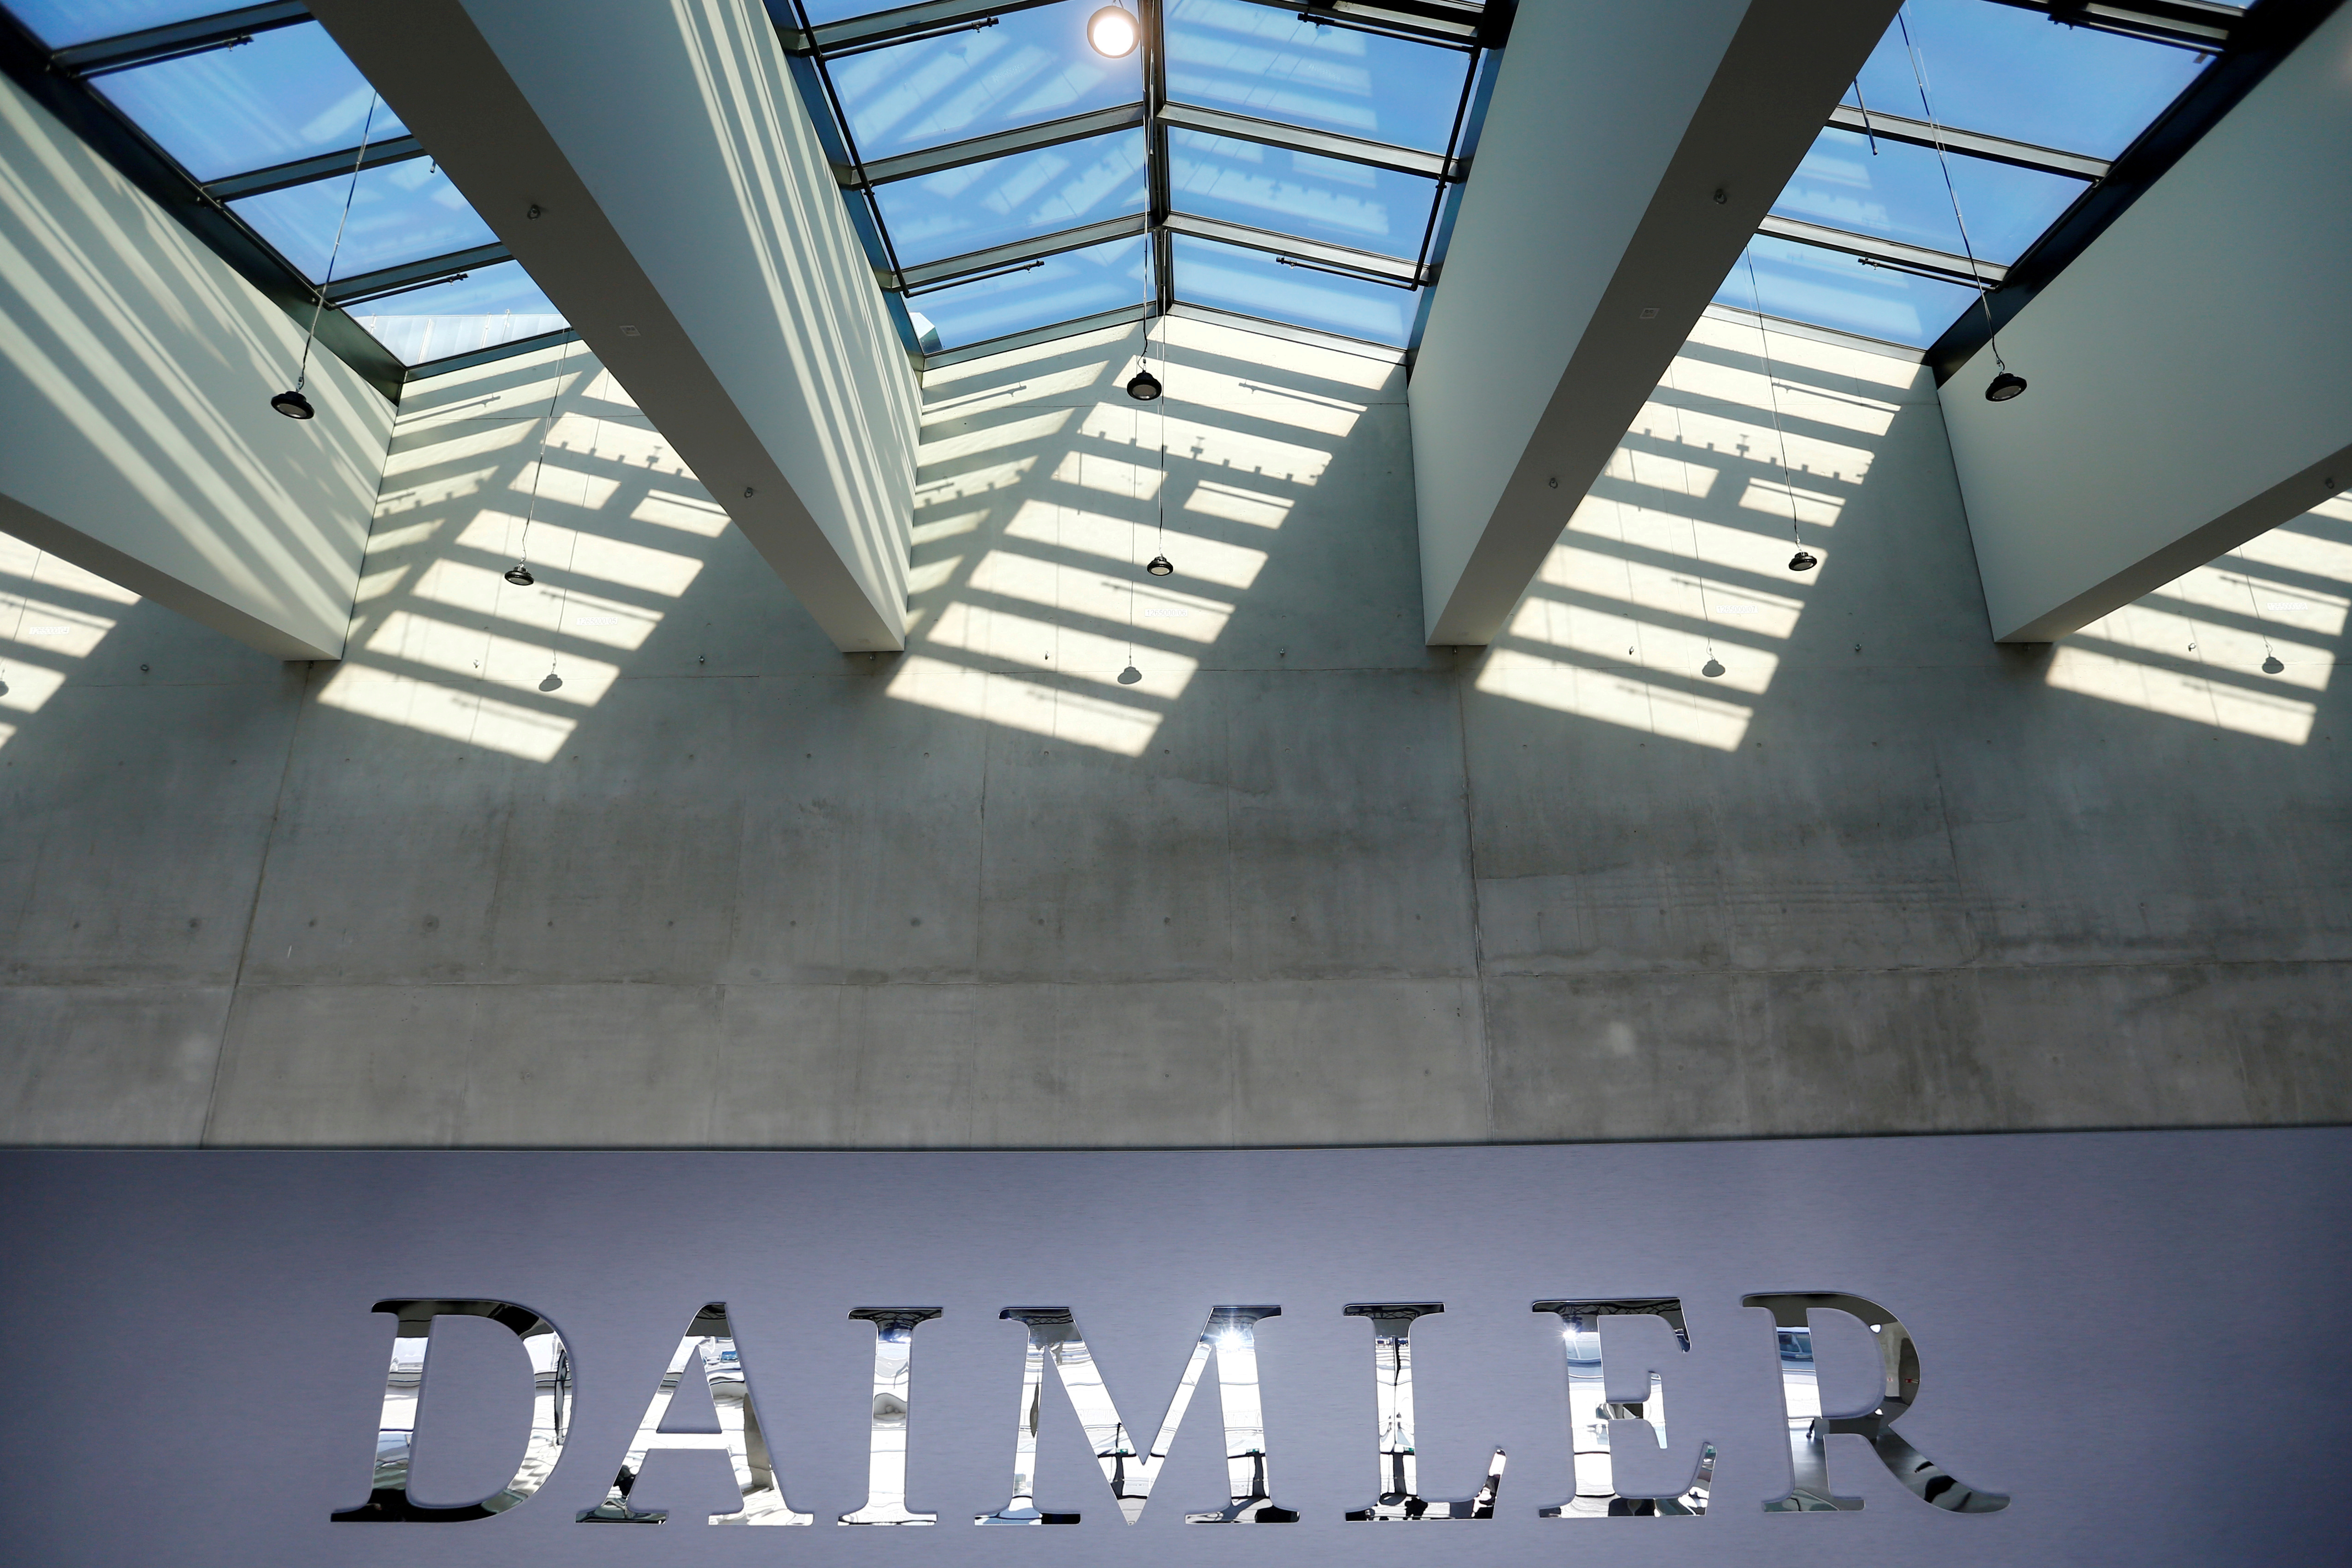 The Daimler logo is seen before the carmaker's annual shareholder meeting in Berlin, Germany, April 5, 2018. REUTERS/Hannibal Hanschke/File Photo